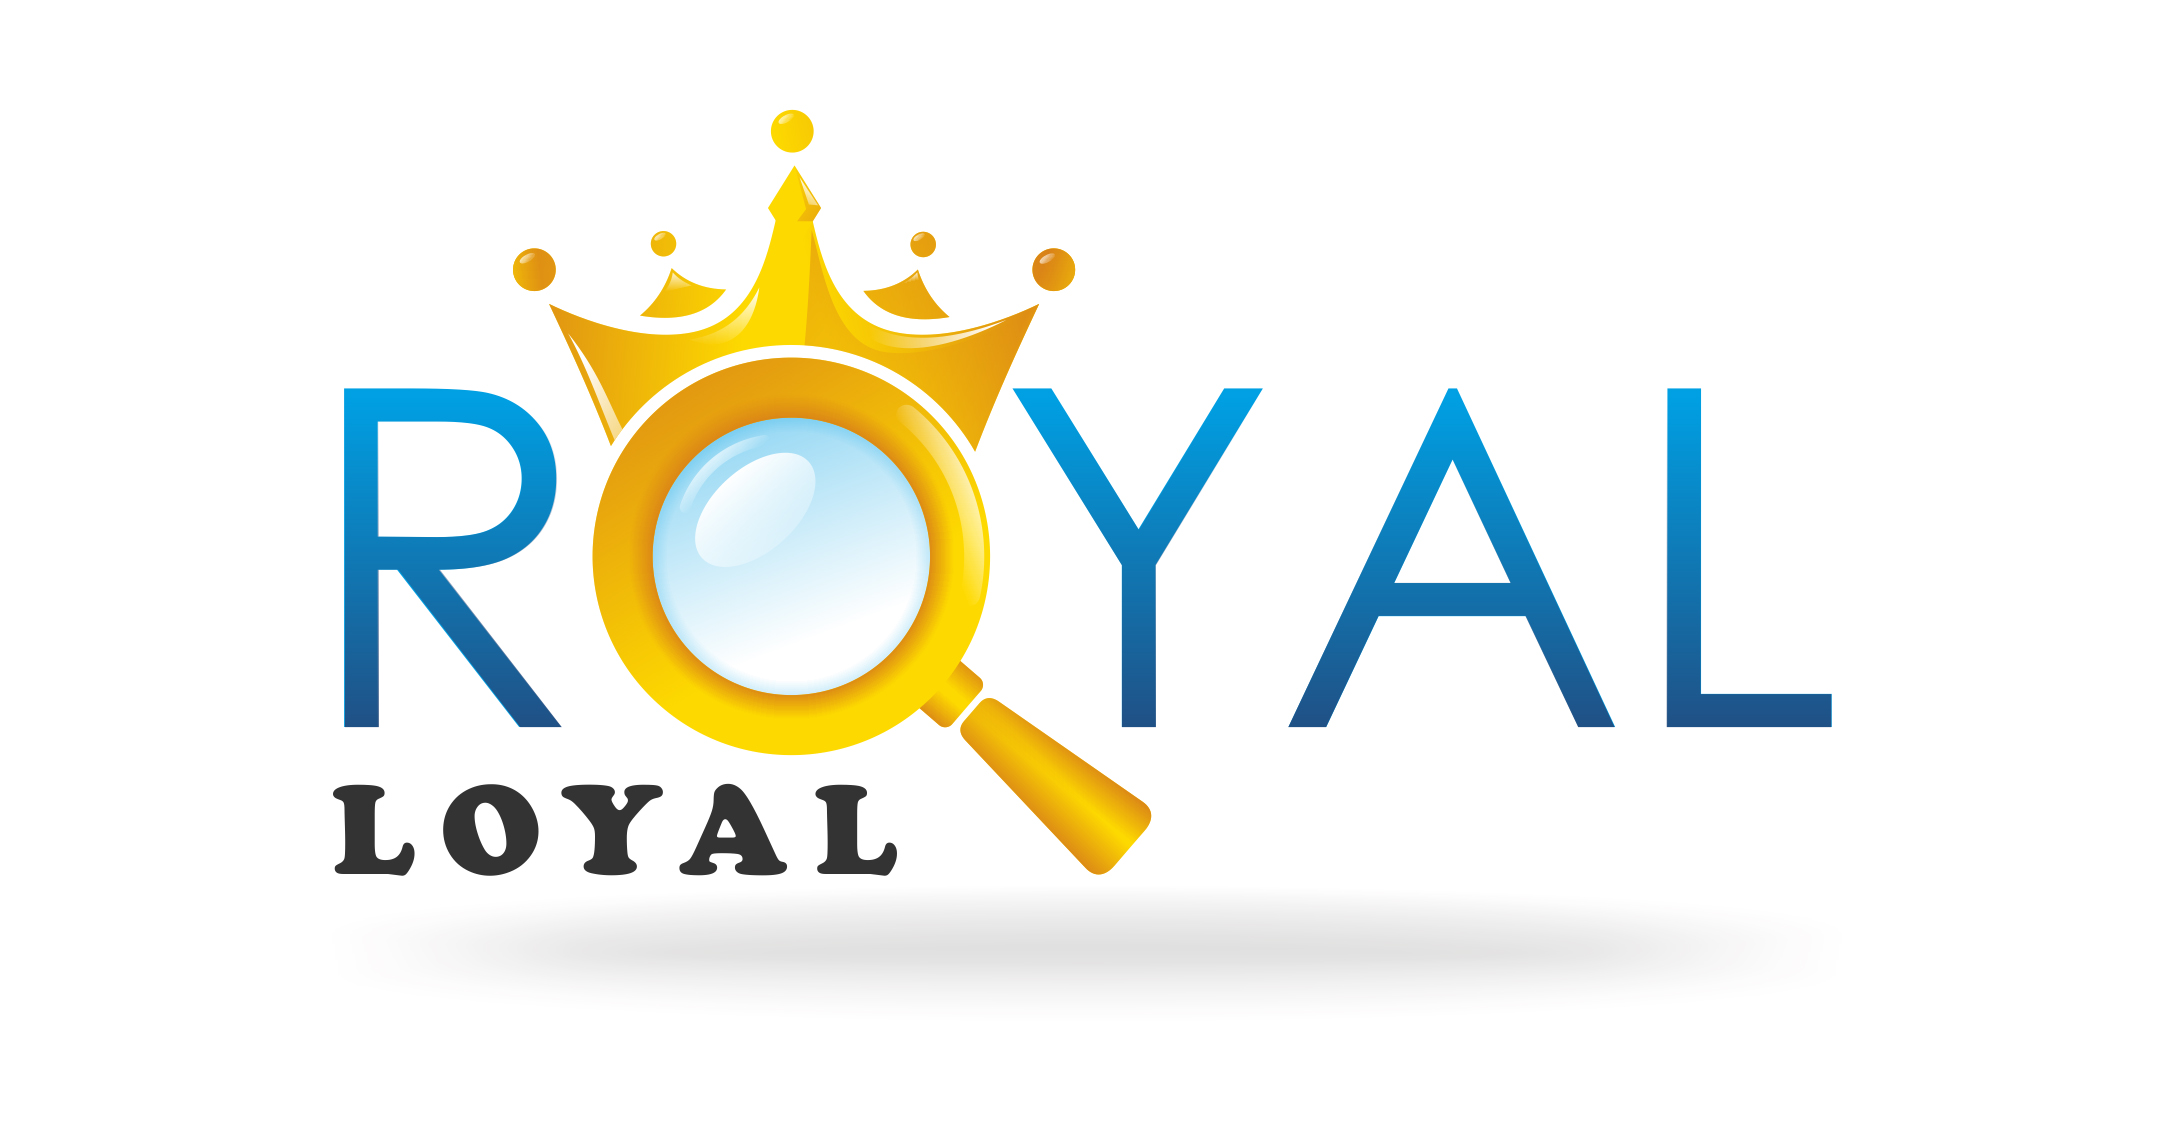 Royal Loyal